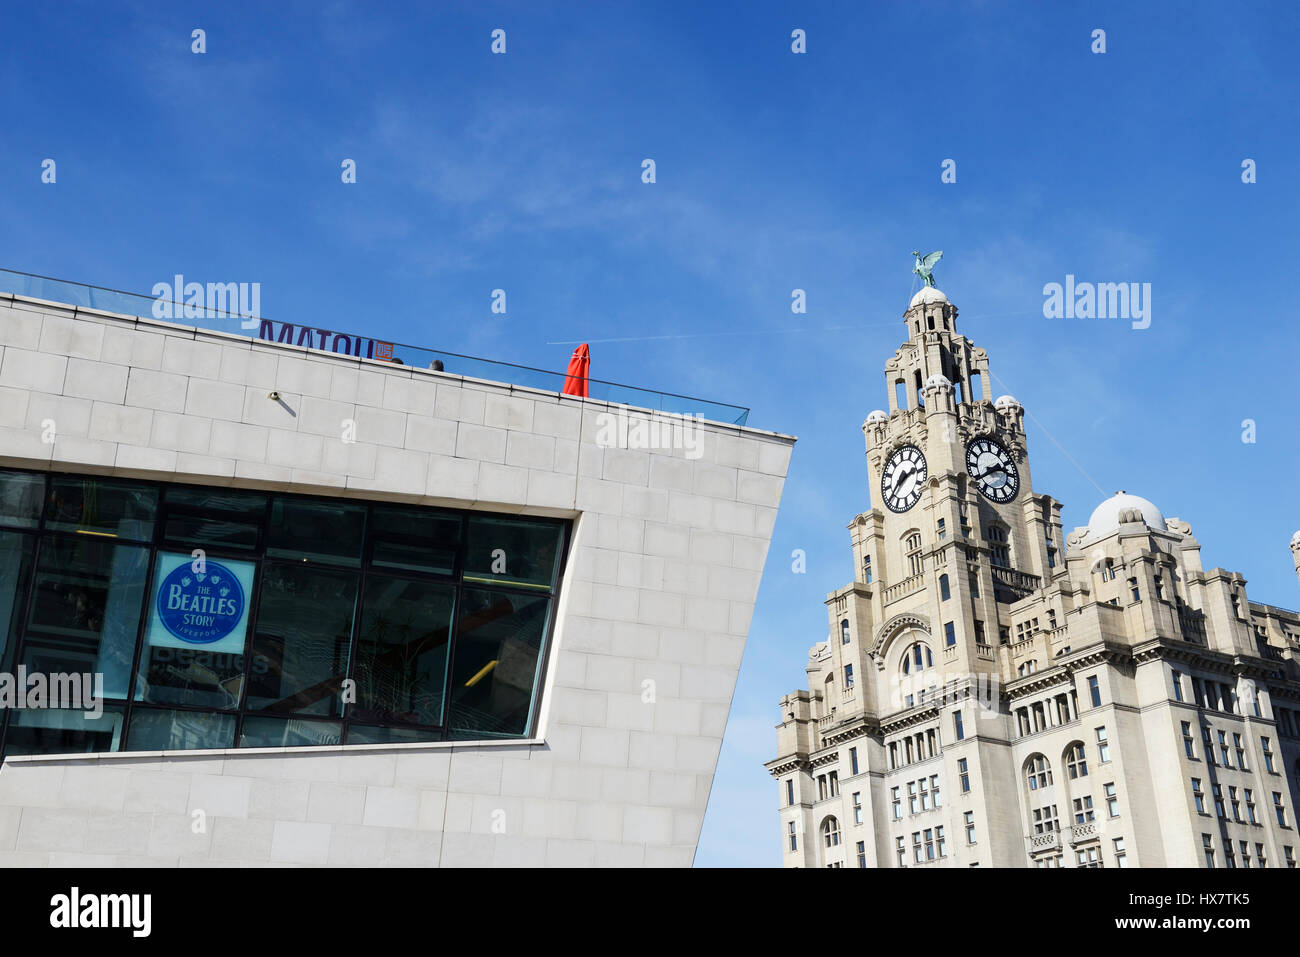 The Beatles Story, a tourist attraction within the New Mersey Ferries building at Pier Head with iconic Liver Building. - Stock Image